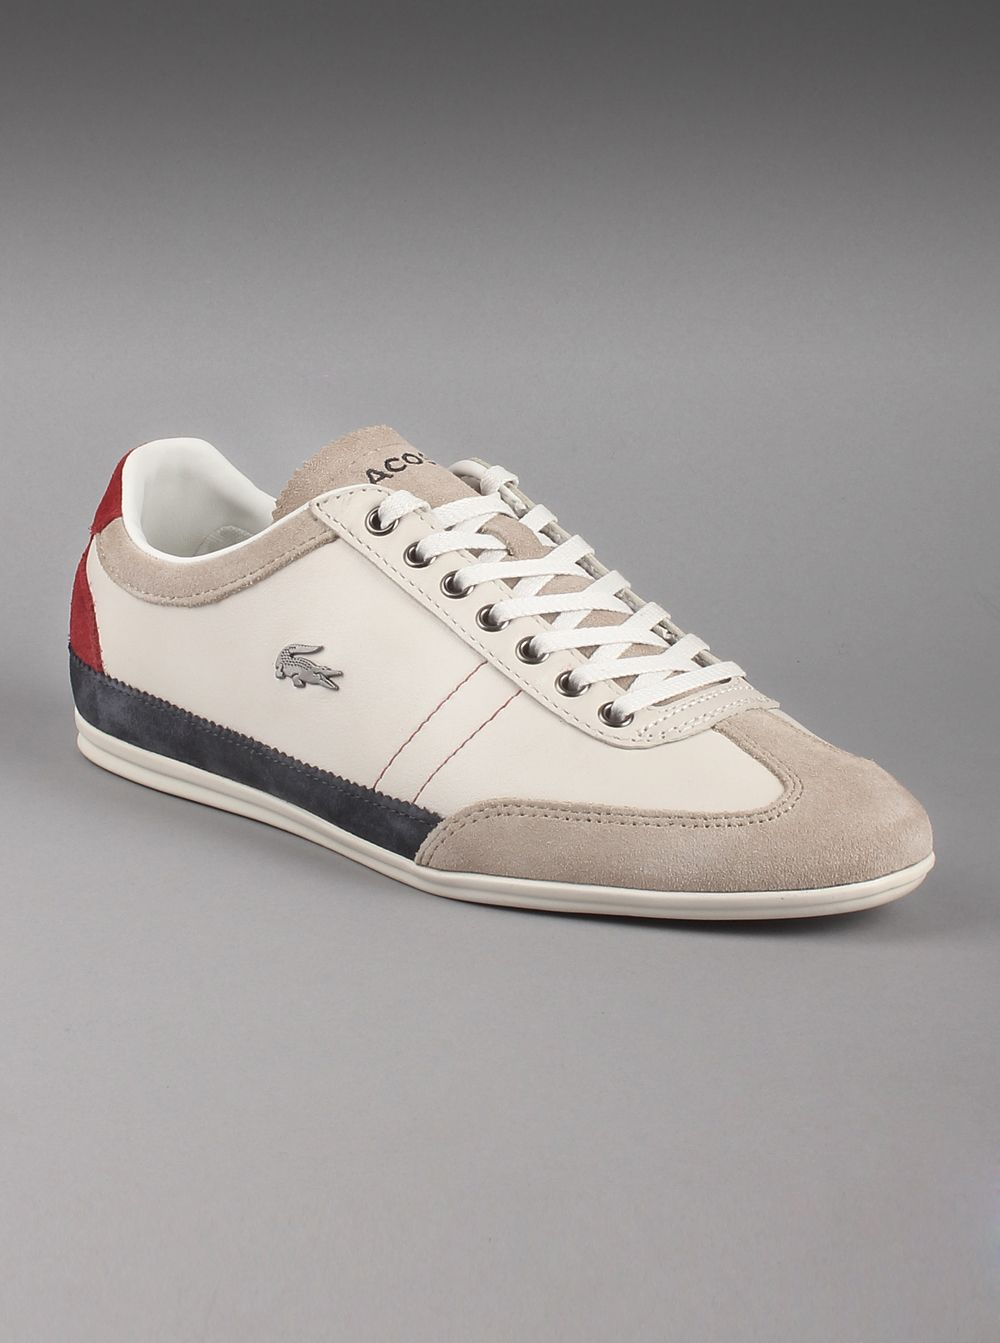 fe8de39bbb92 Lacoste® Men s Misano 15 SRM Leather Sneakers in White. Sporty and athletic  low-